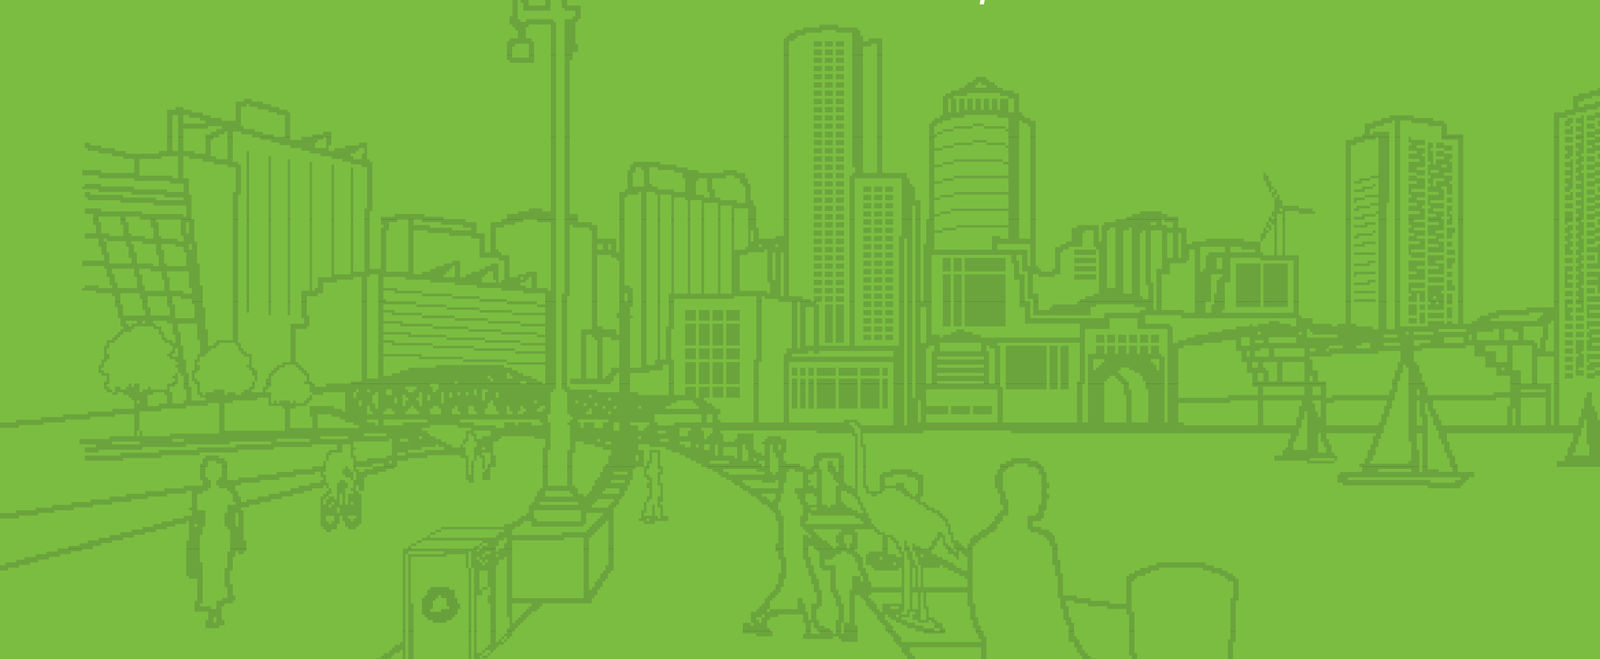 Cover image of Green Ribbon Commission report